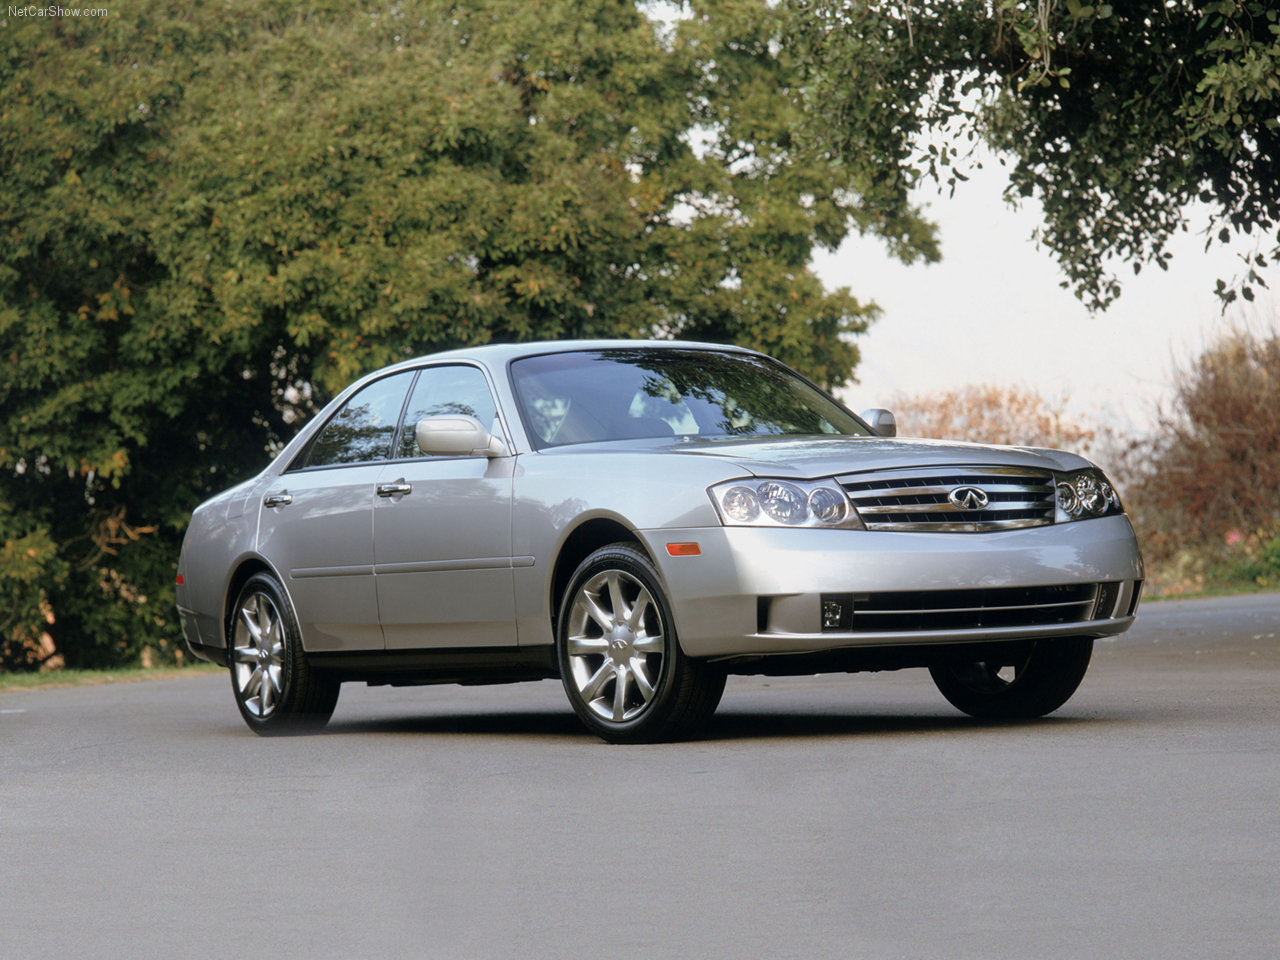 2005 infiniti m45 sport related infomationspecifications weili dimanche 24 avril 2011 vanachro Gallery